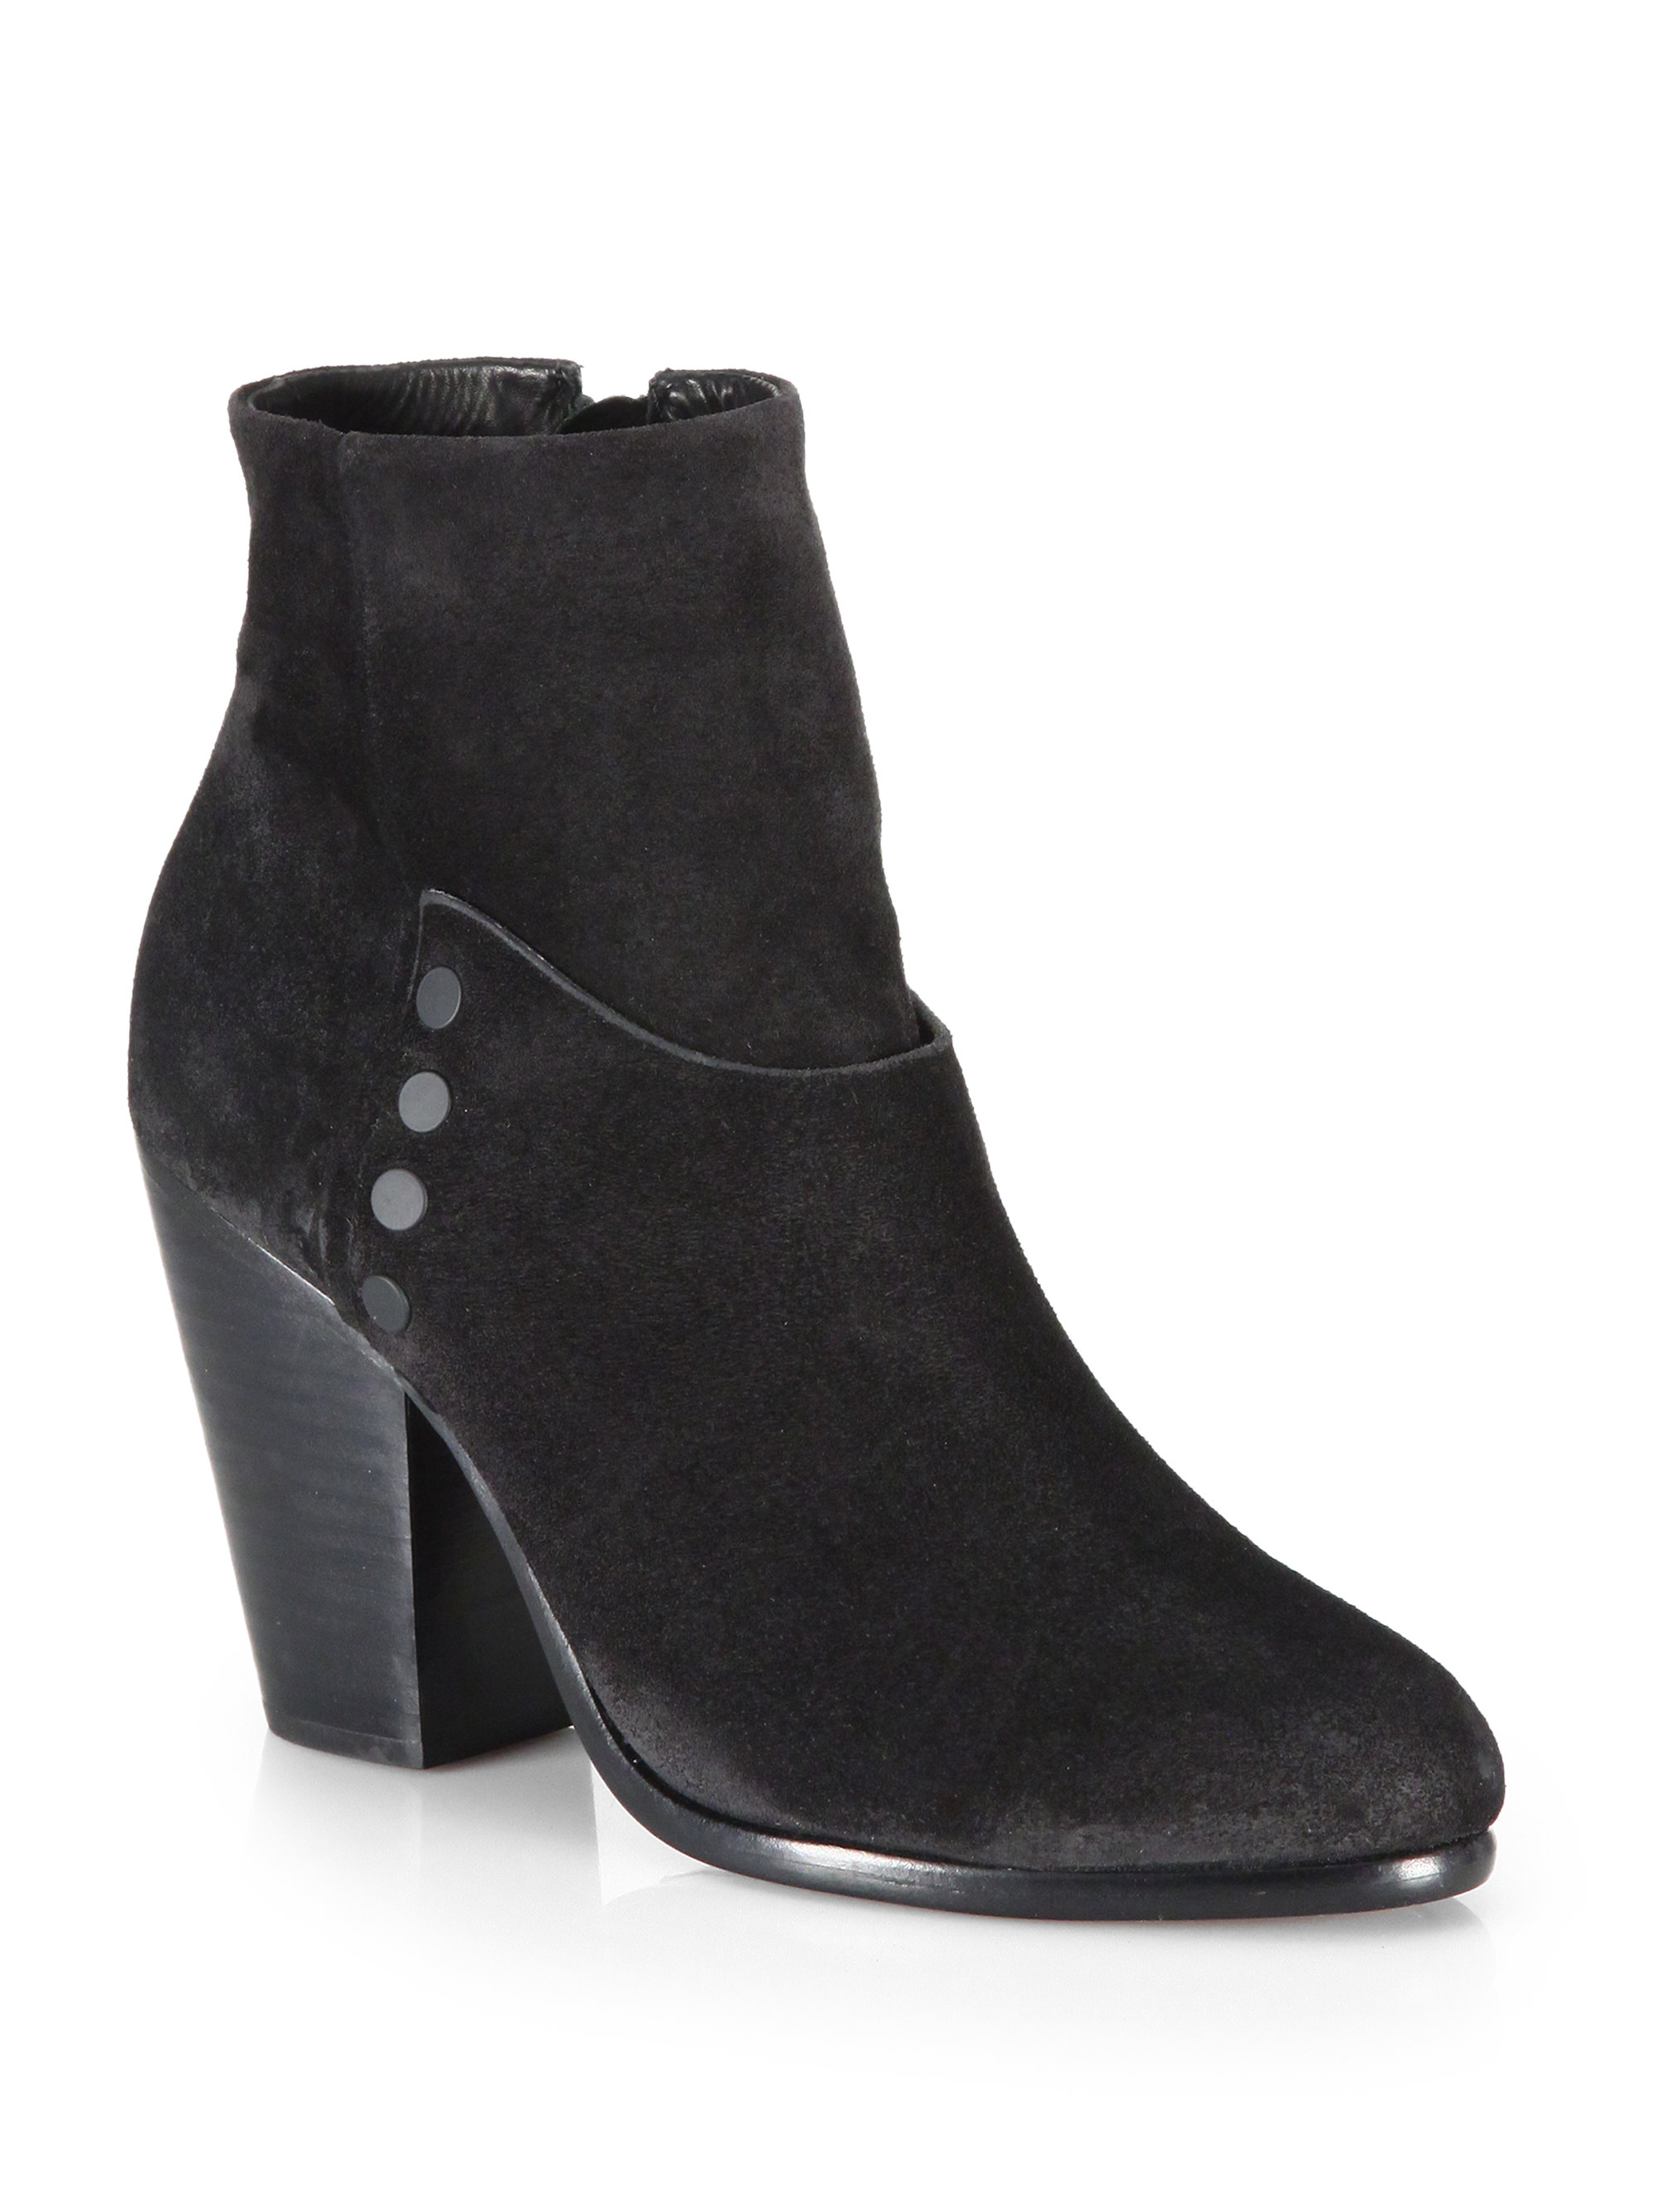 rag bone kendall suede ankle boots in black save 50